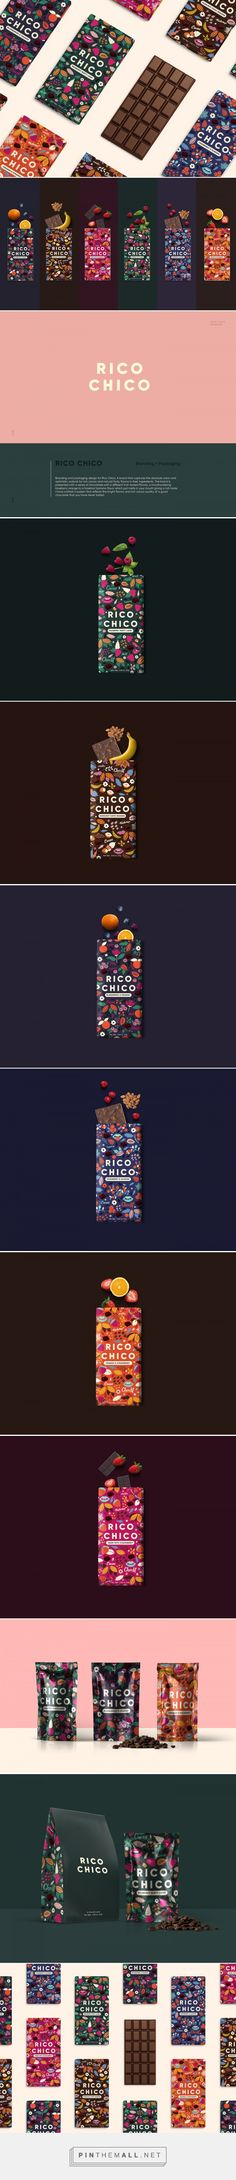 Rico Chico Chocolate Packaging by Meroo Seth | Fivestar Branding Agency – Design and Branding Agency & Curated Inspiration Gallery #chocolate #chocolatepackaging #packaging #packaginginspiration #packagedesign #package #design #designinspiration